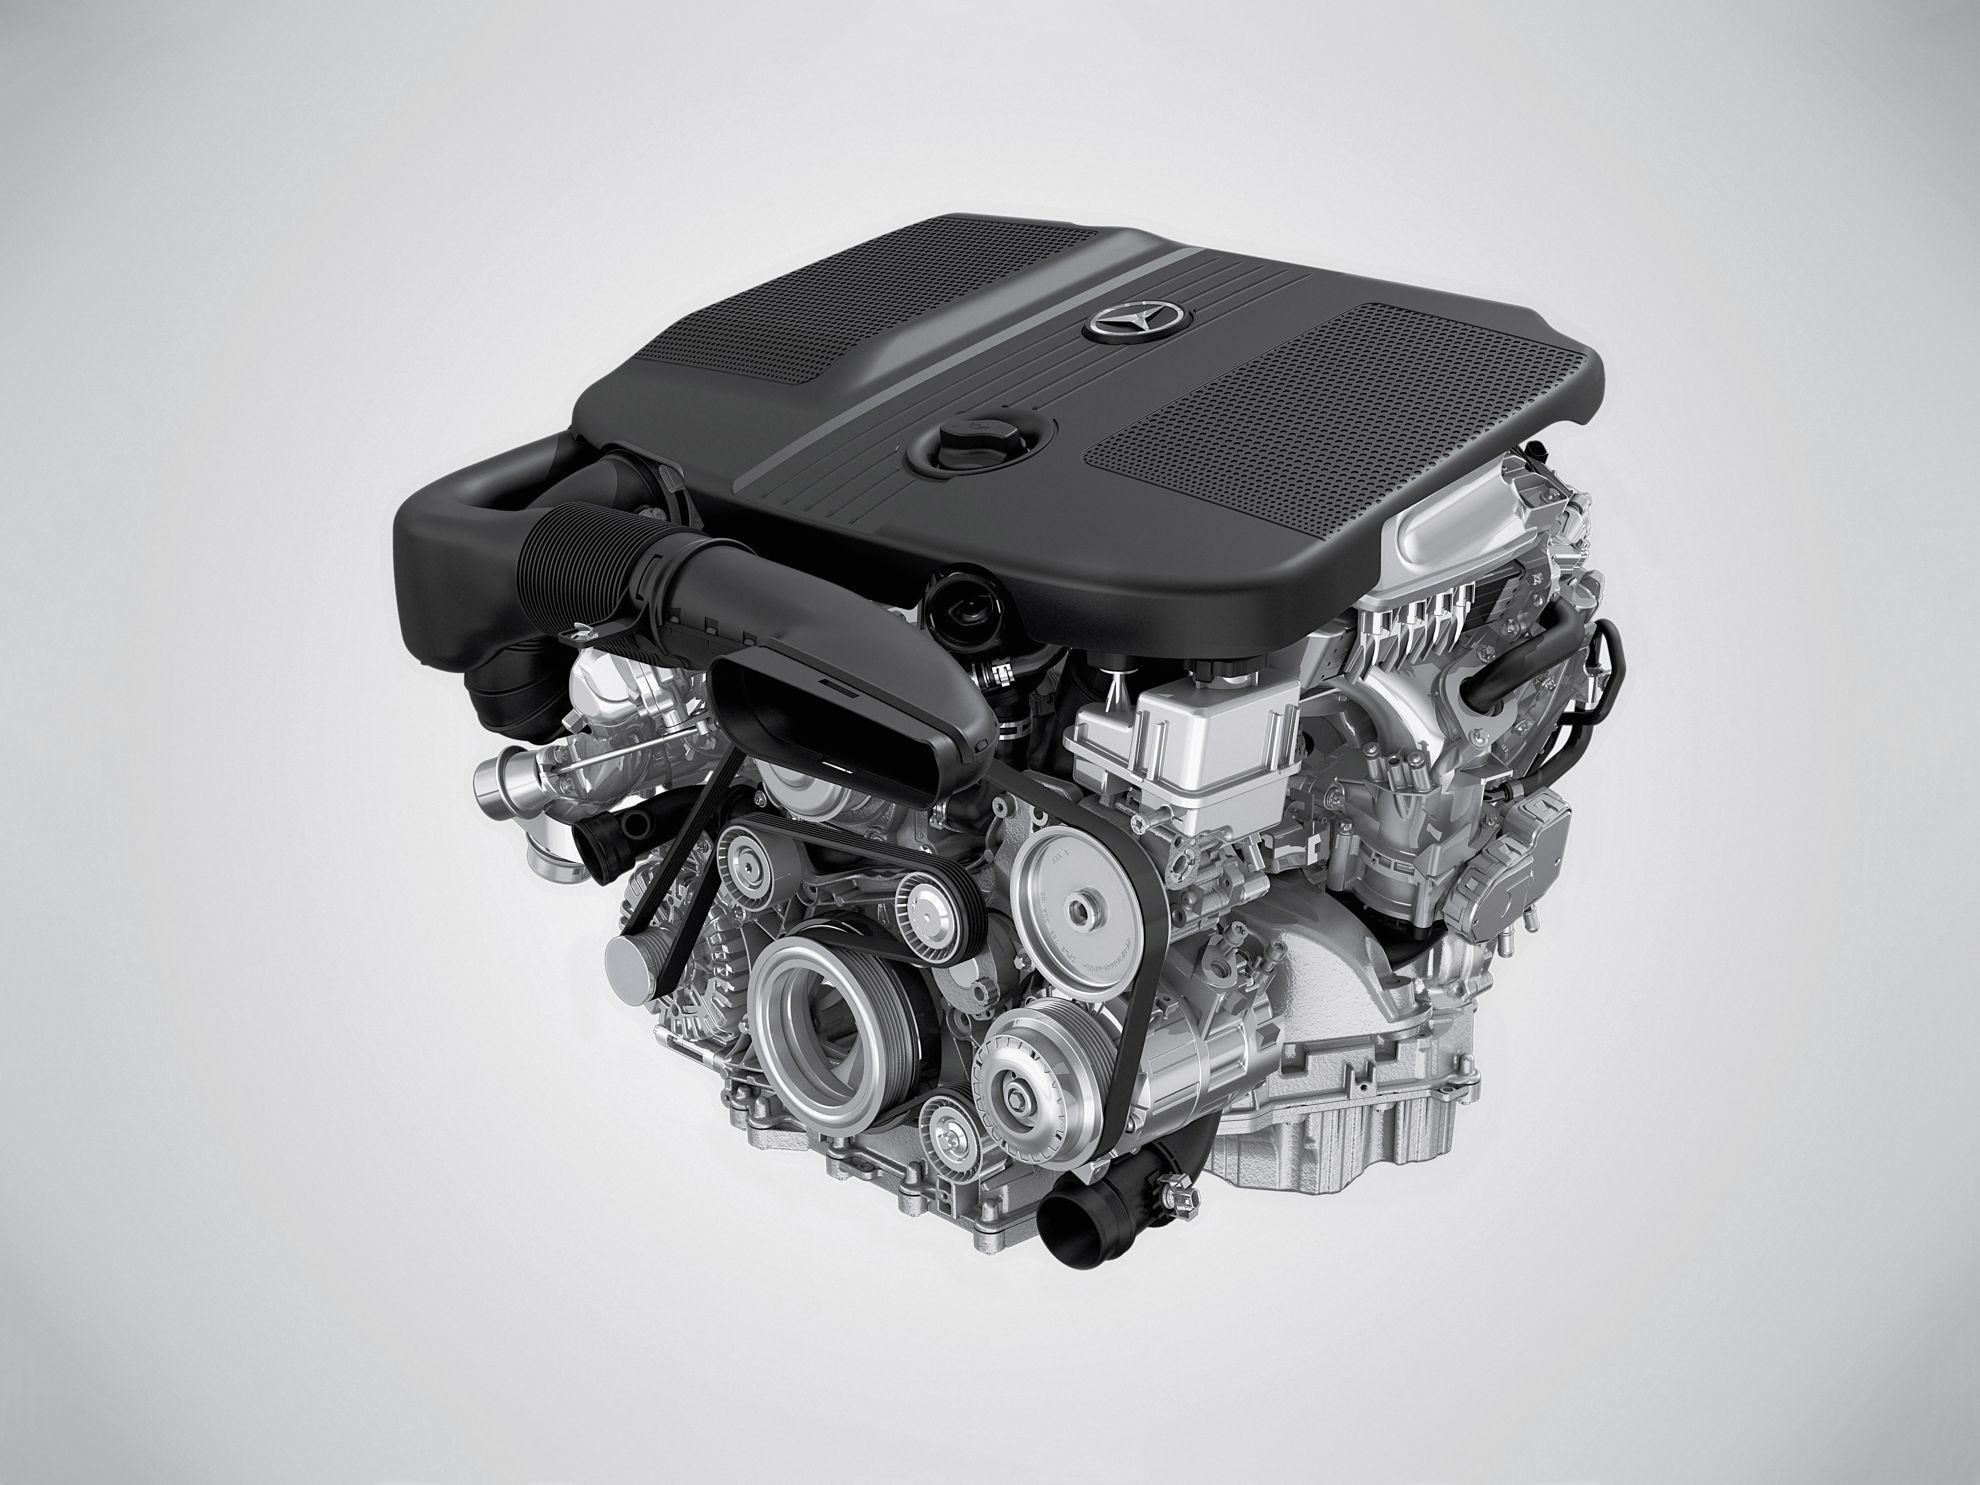 Mercedes benz c class engine and drive system for Mercedes benz engineering